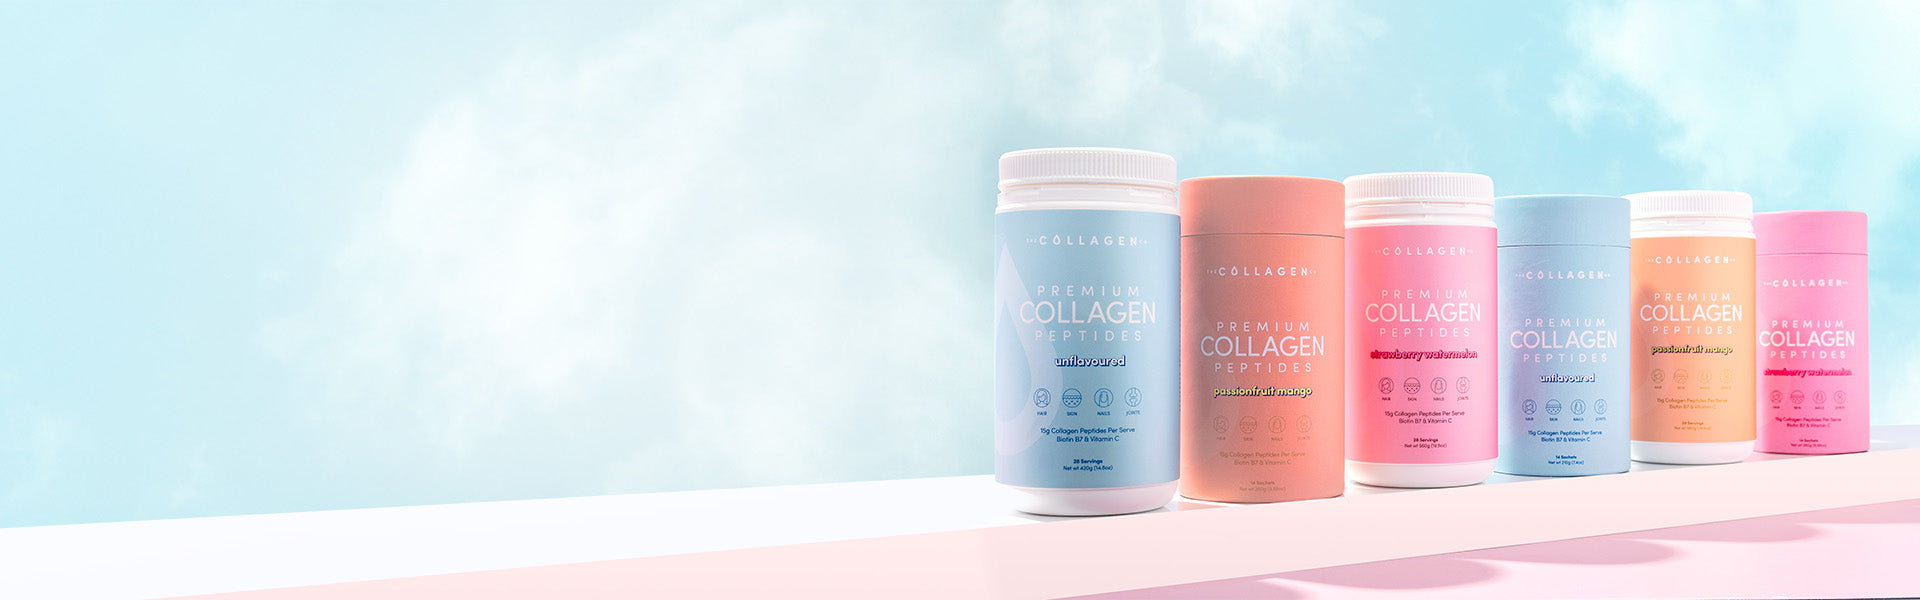 The Collagen Co. Cylinder and Jar products